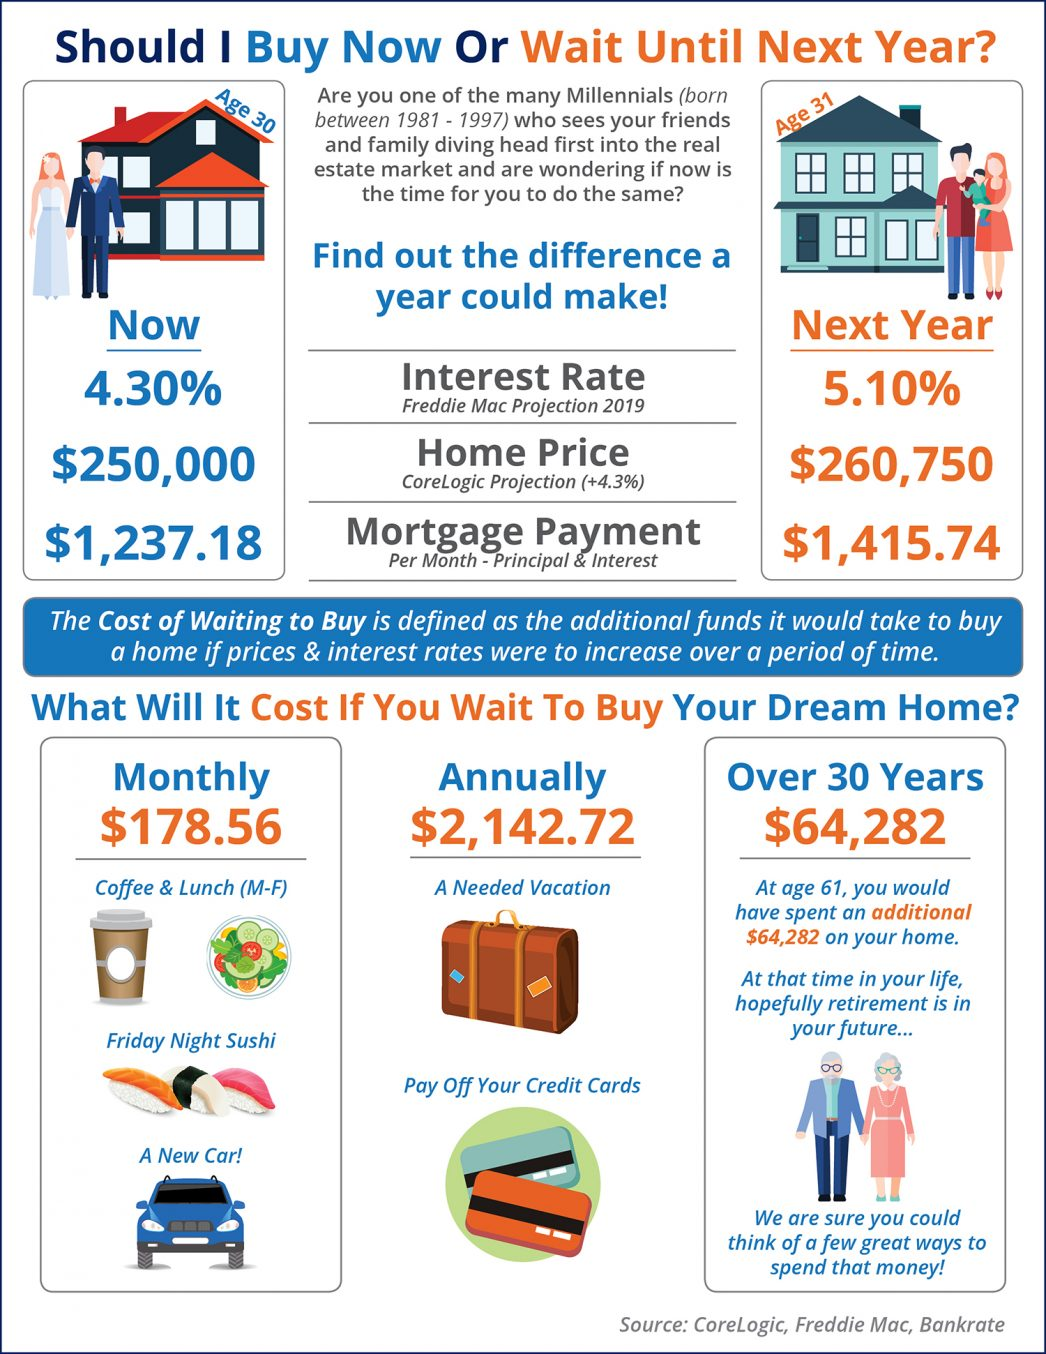 Waiting a year to buy a home could cost you!